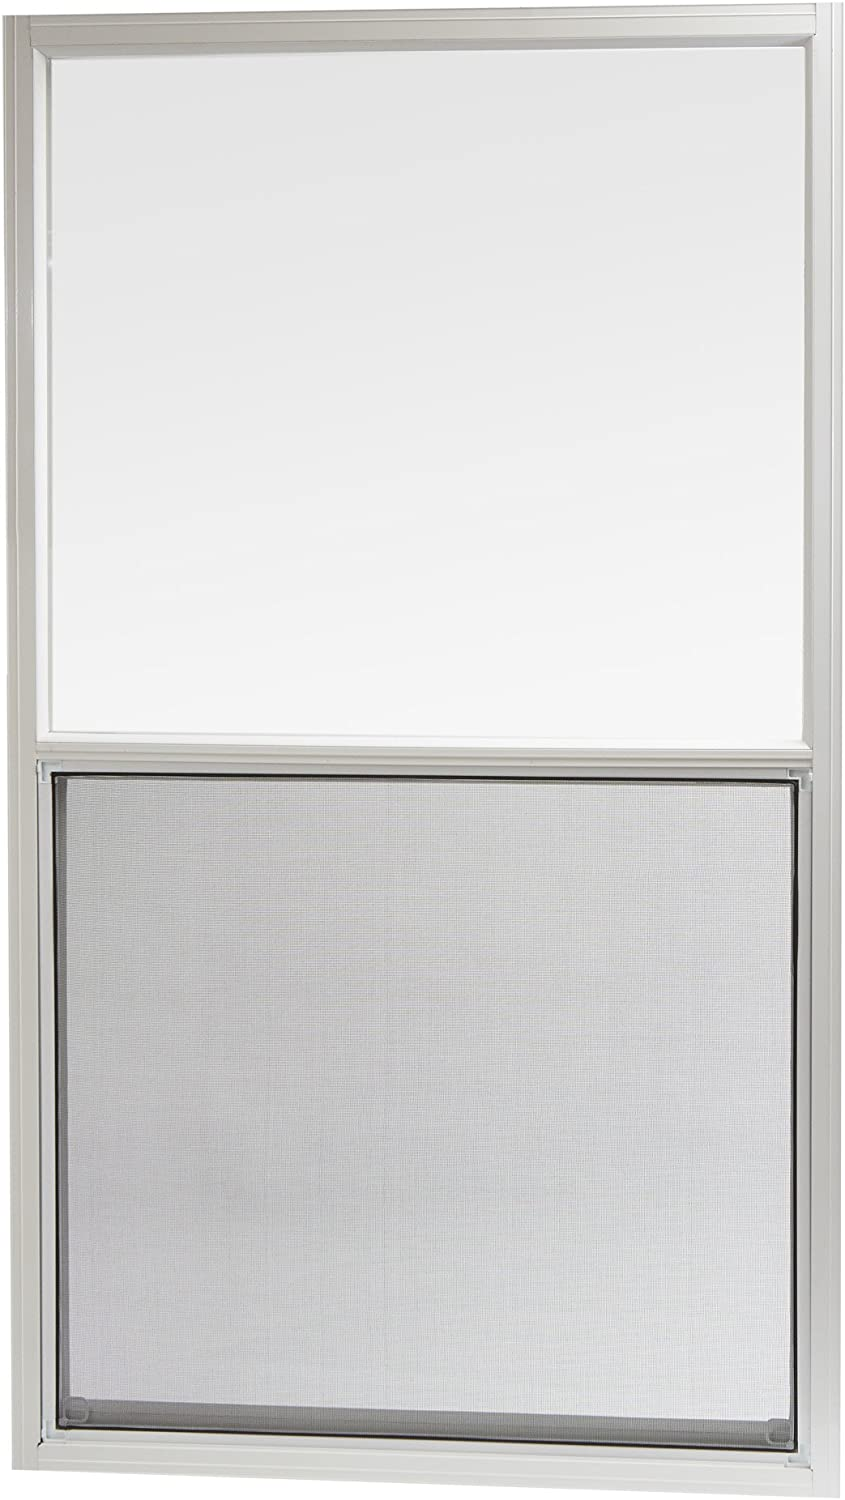 "Park Ridge Products AMHW3054PR Park Ridge White Aluminum Mobile Home Single Hung Window, 30"" x 54"""